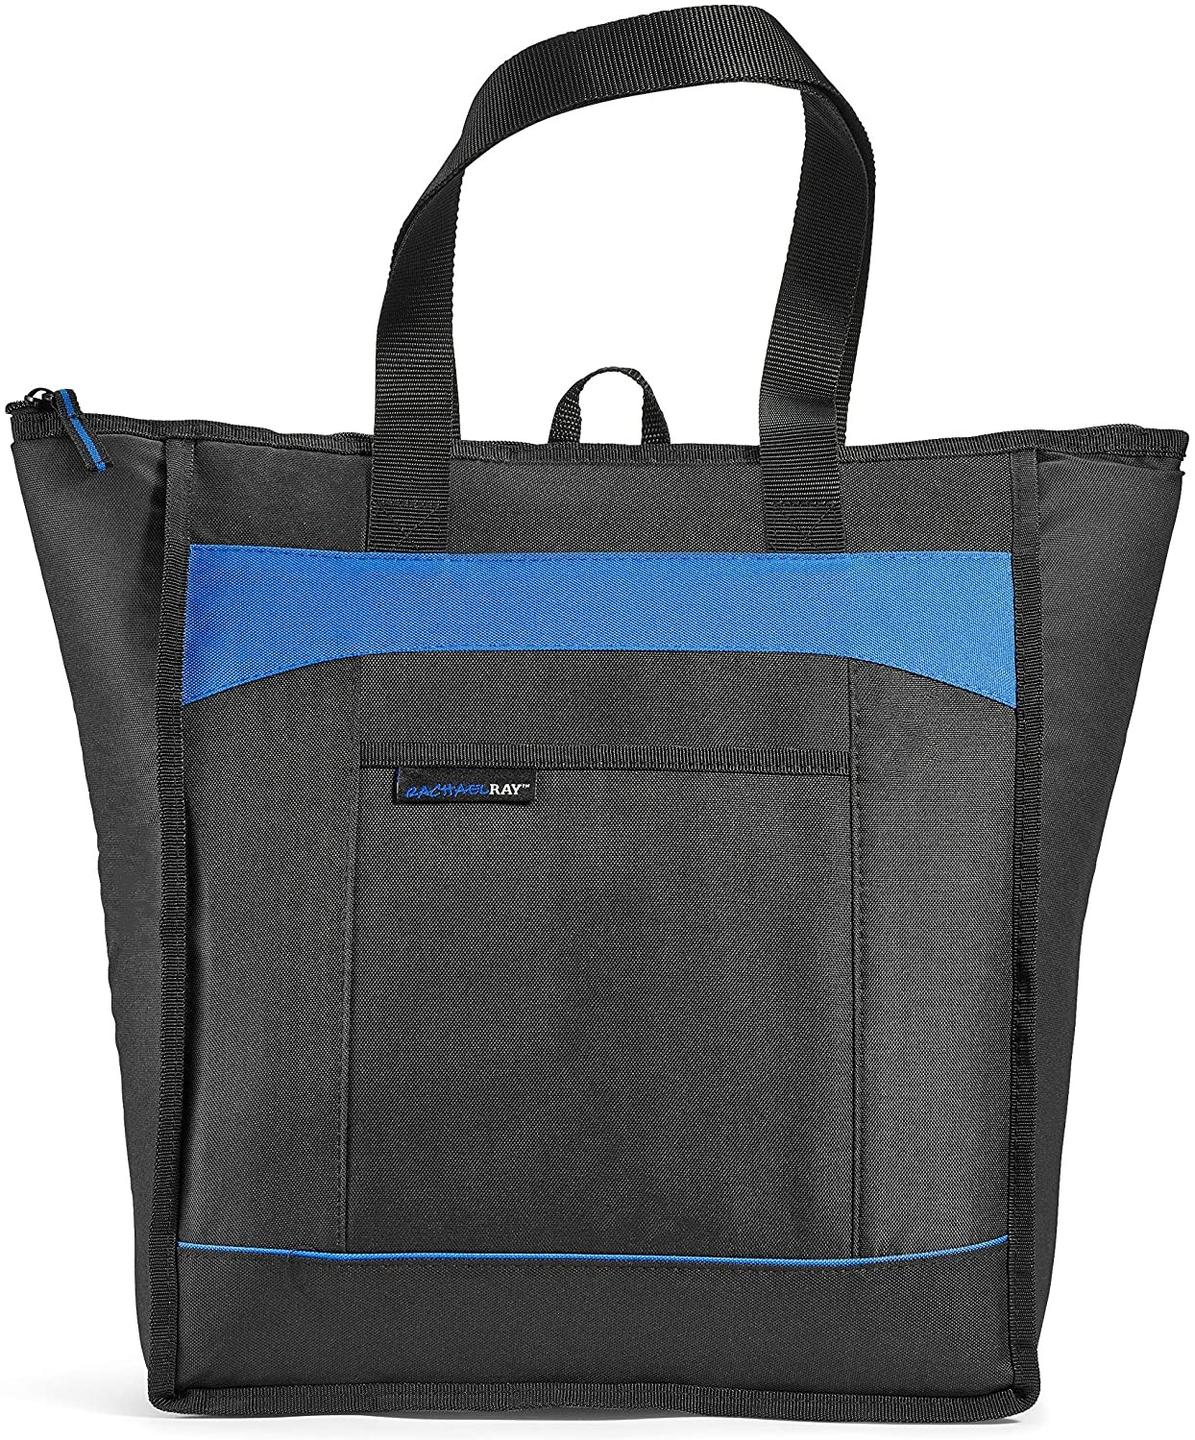 Rachel Ray insulated grocery tote bag